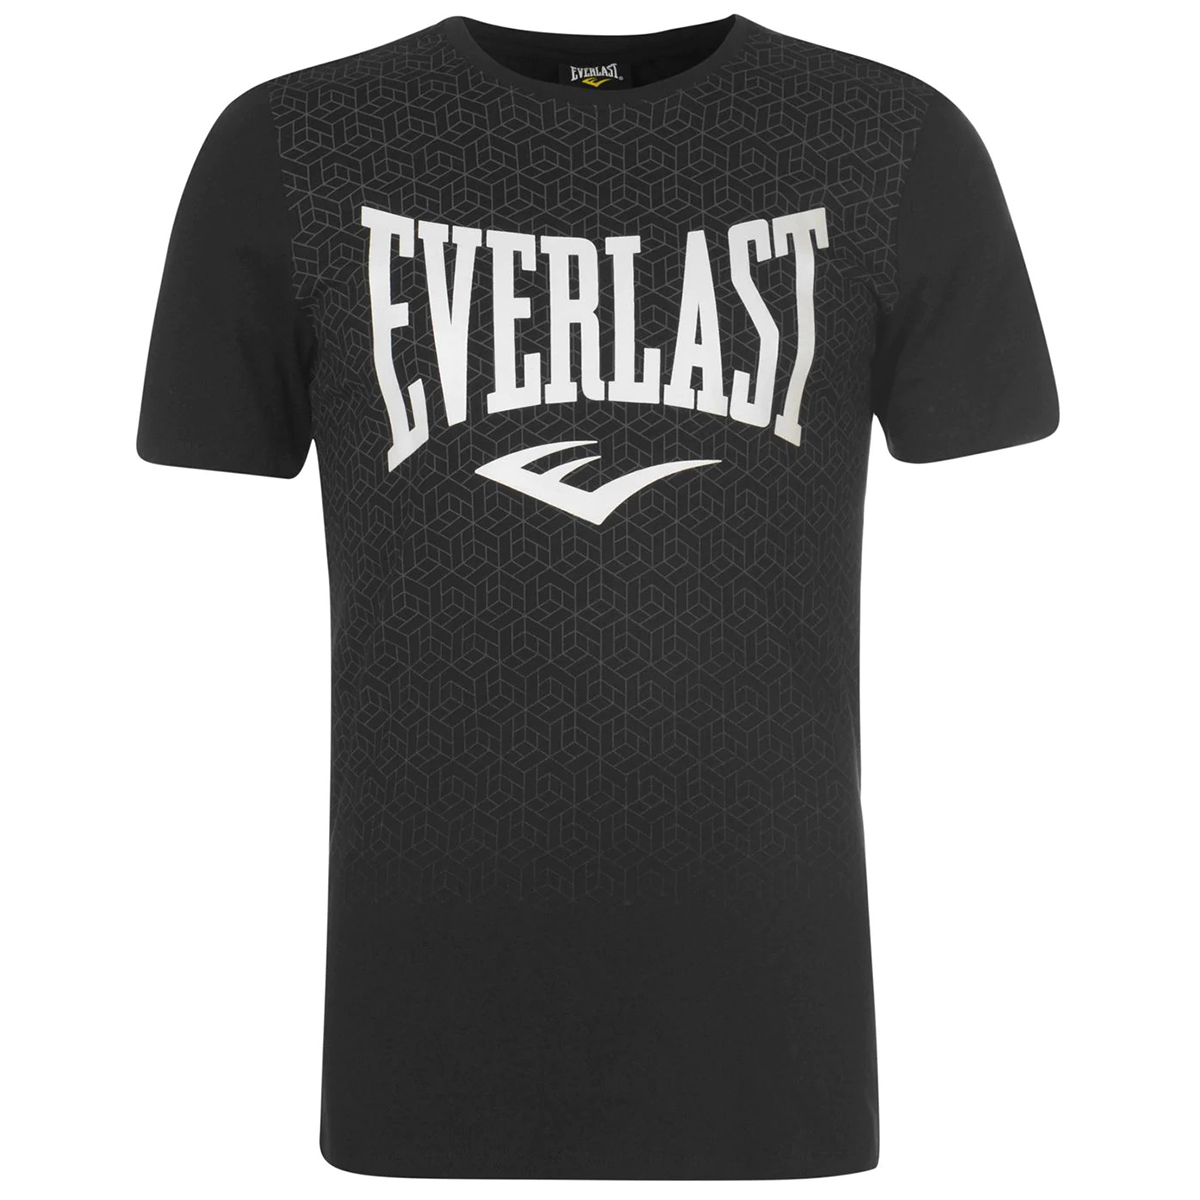 Everlast Men's Geo Print Short-Sleeve Tee - Black, 4XL